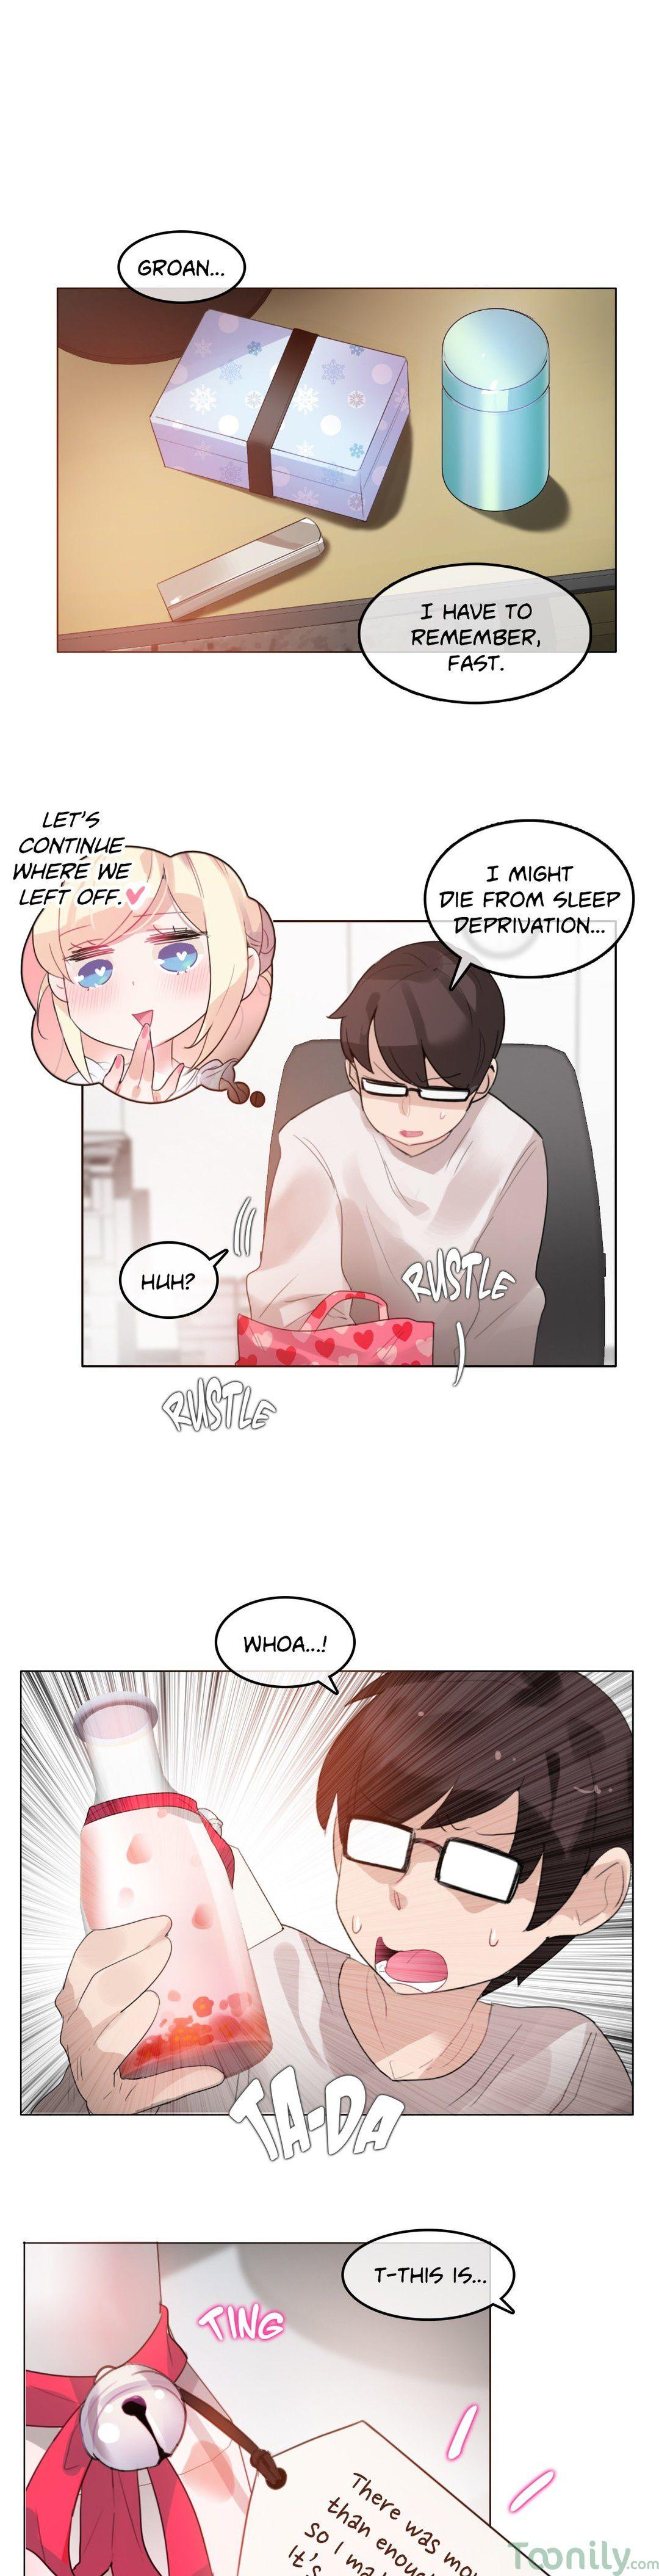 A Pervert's Daily Life Ch. 35-71 519